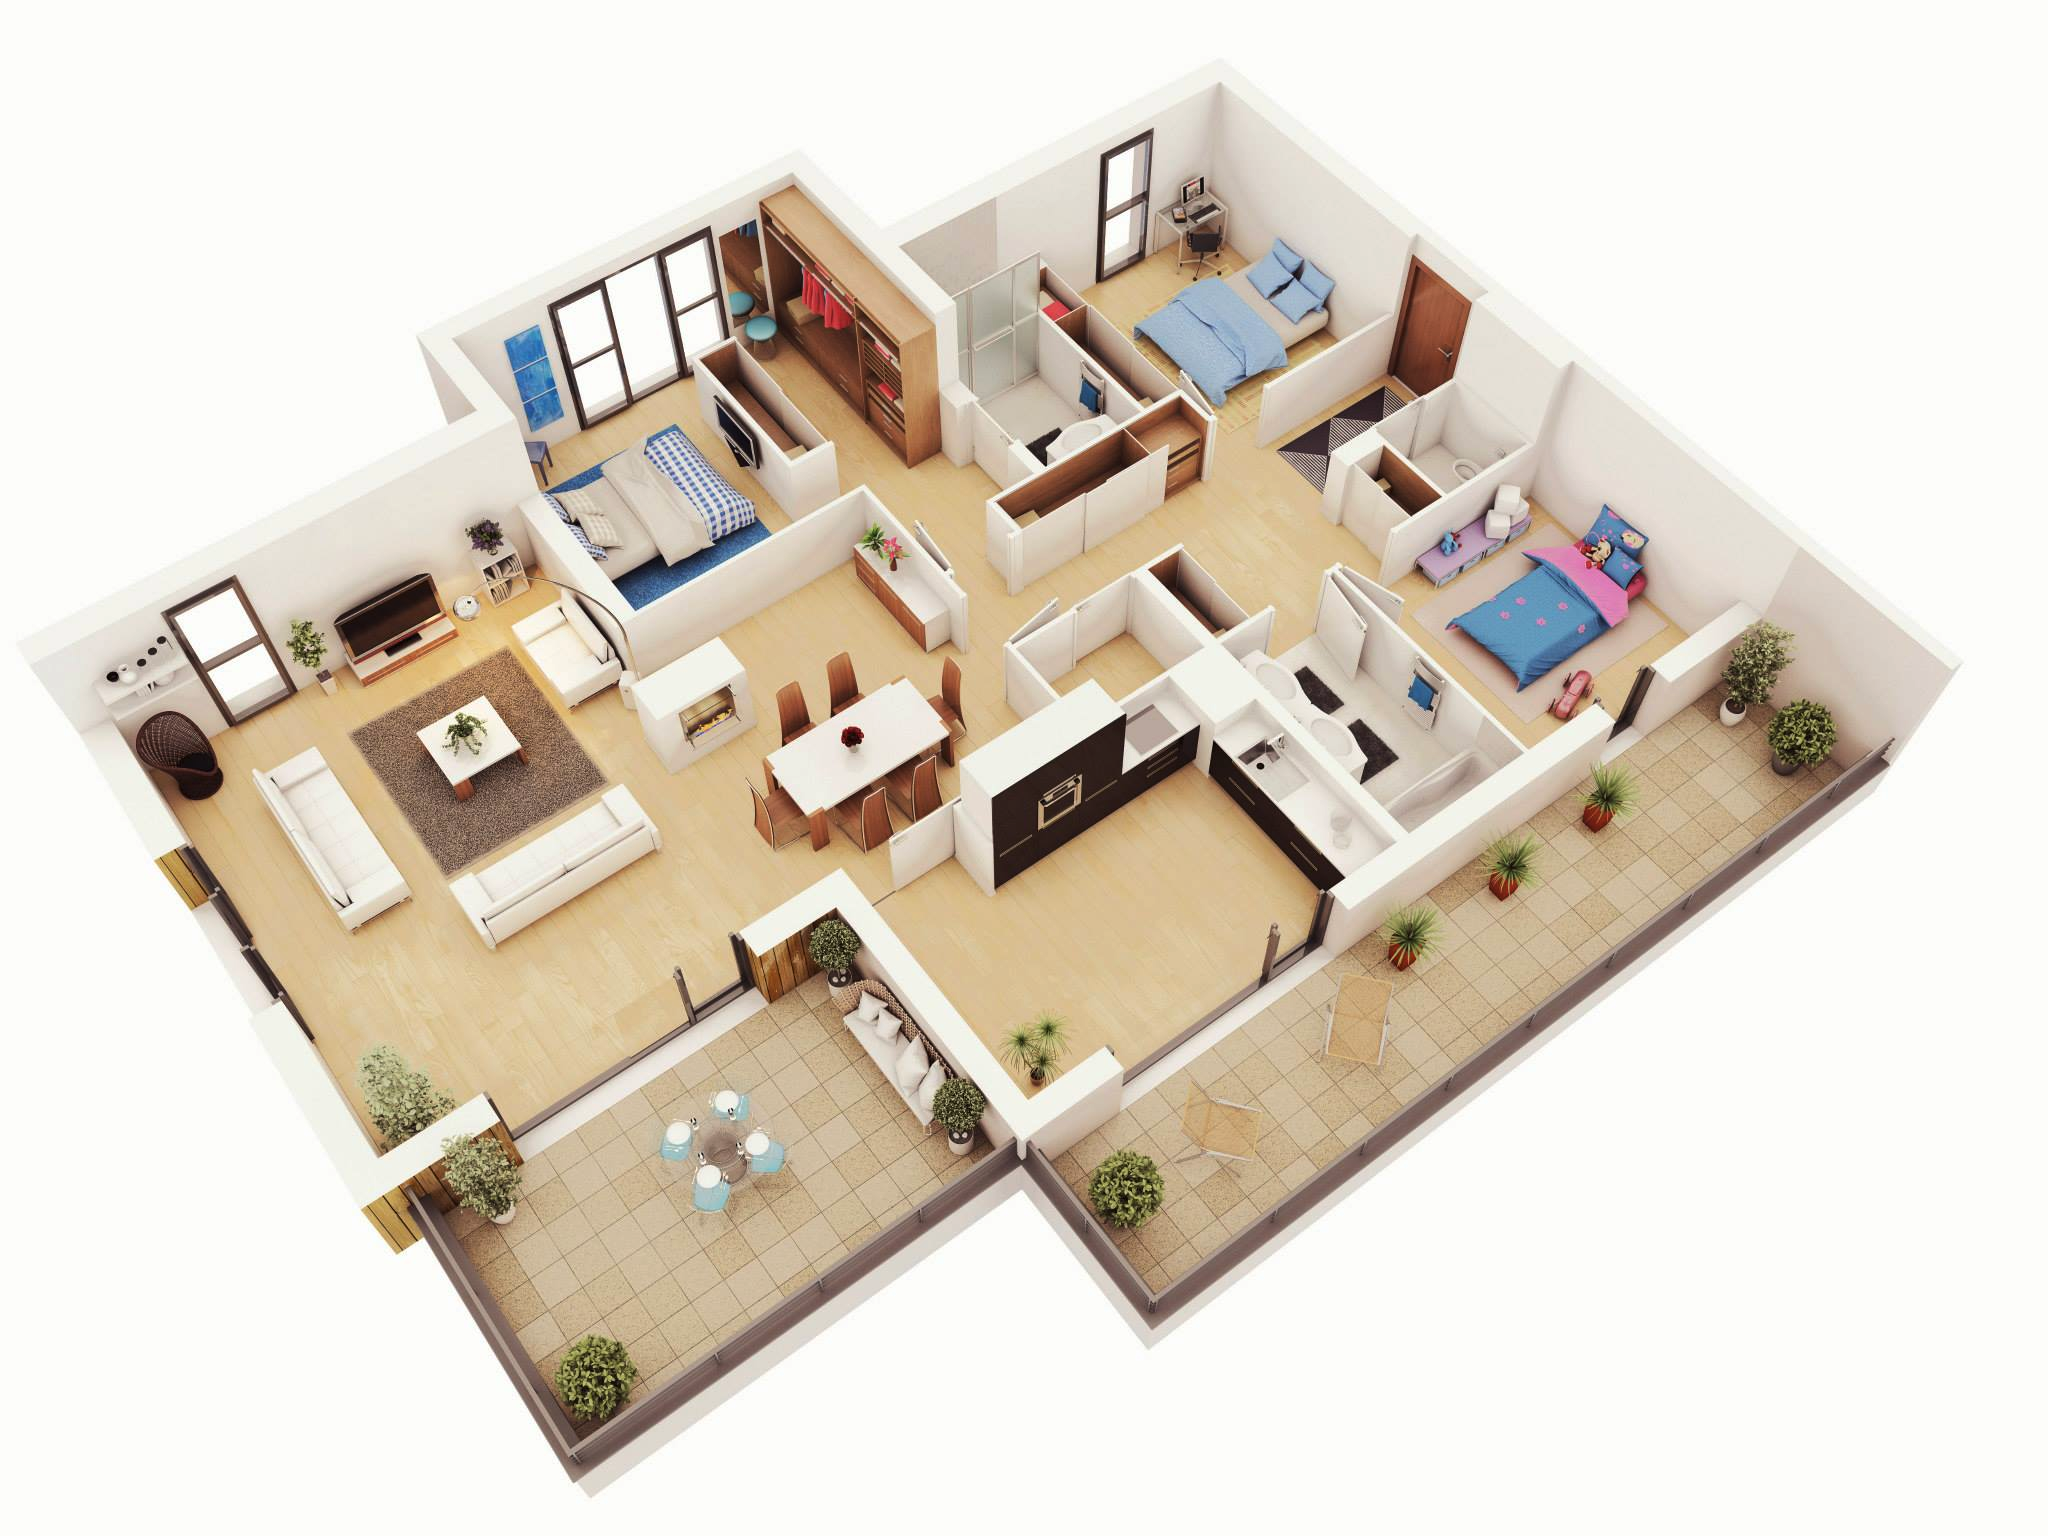 25 More 3 Bedroom 3D Floor Plans | Architecture & Design